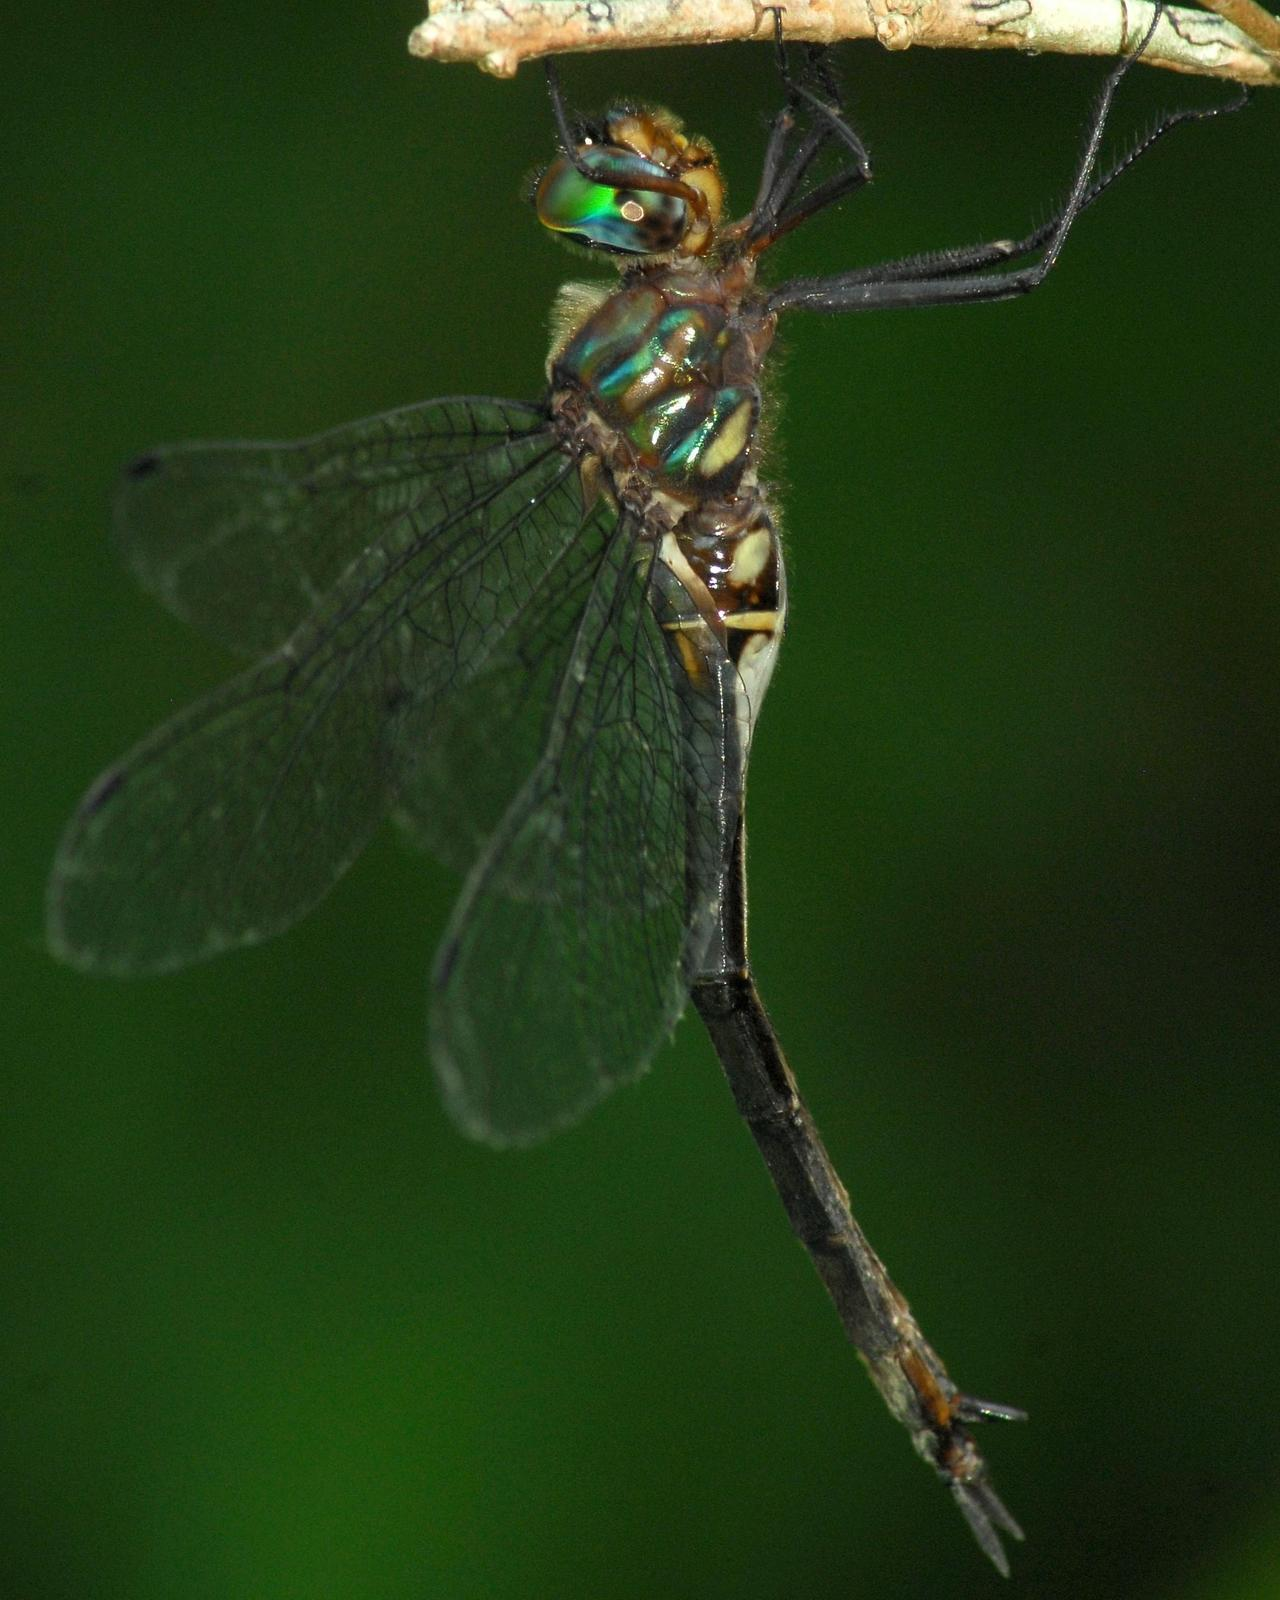 Clamp-tipped Emerald Photo by David Hollie